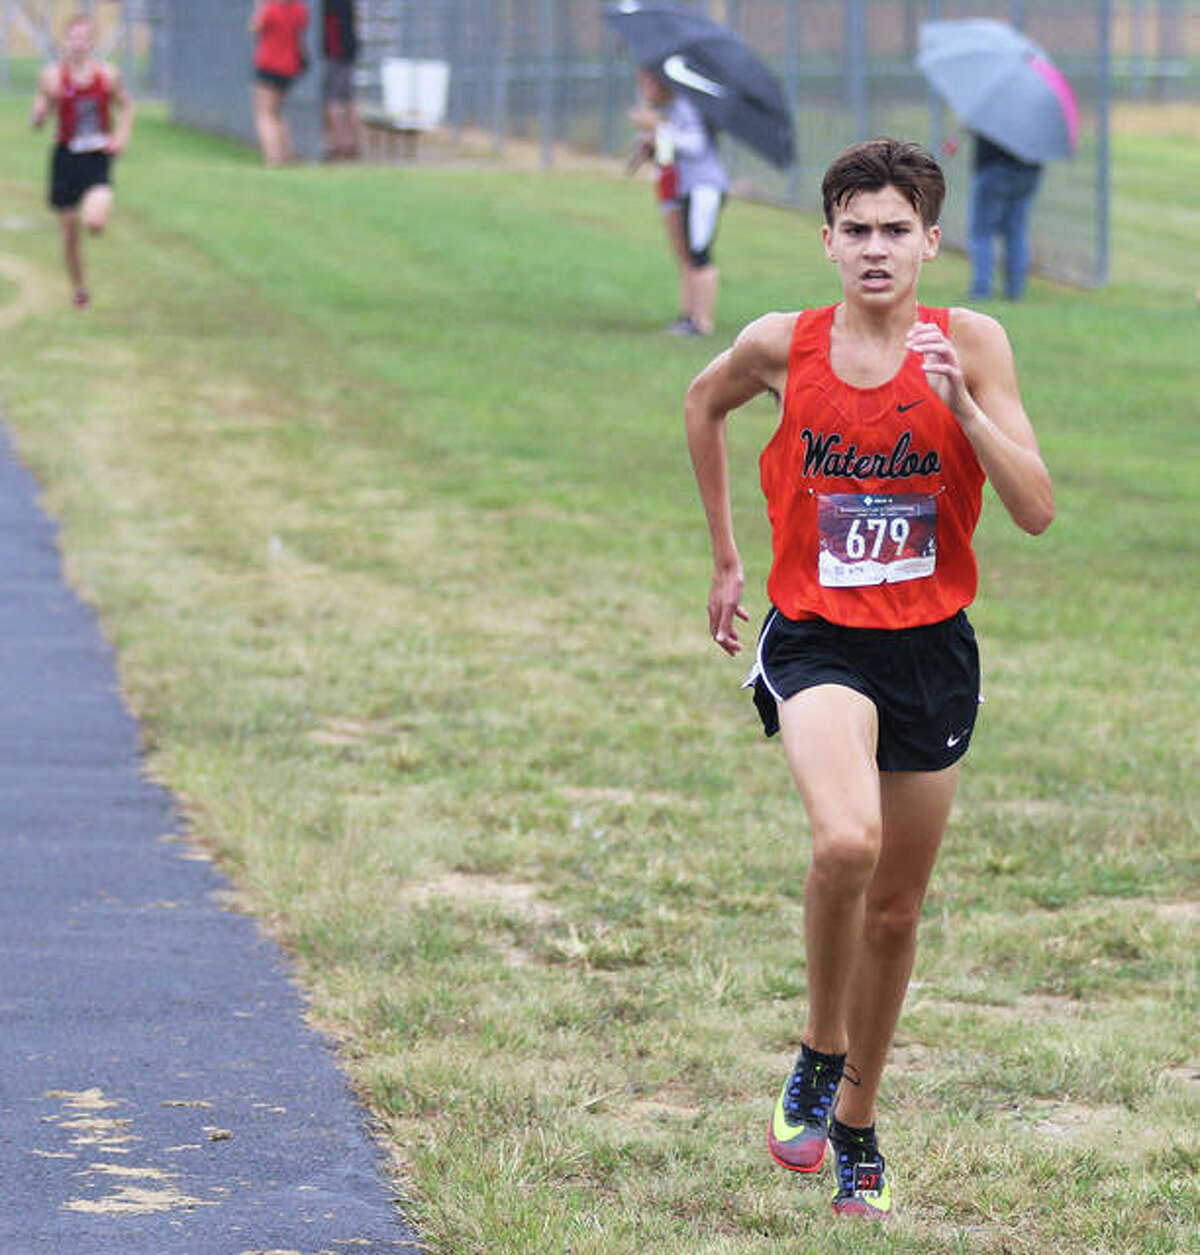 Waterloo sophomore Joe Schwartz approaches the track for the final quarter-mile of his victory in the Pre-MVC boys race.